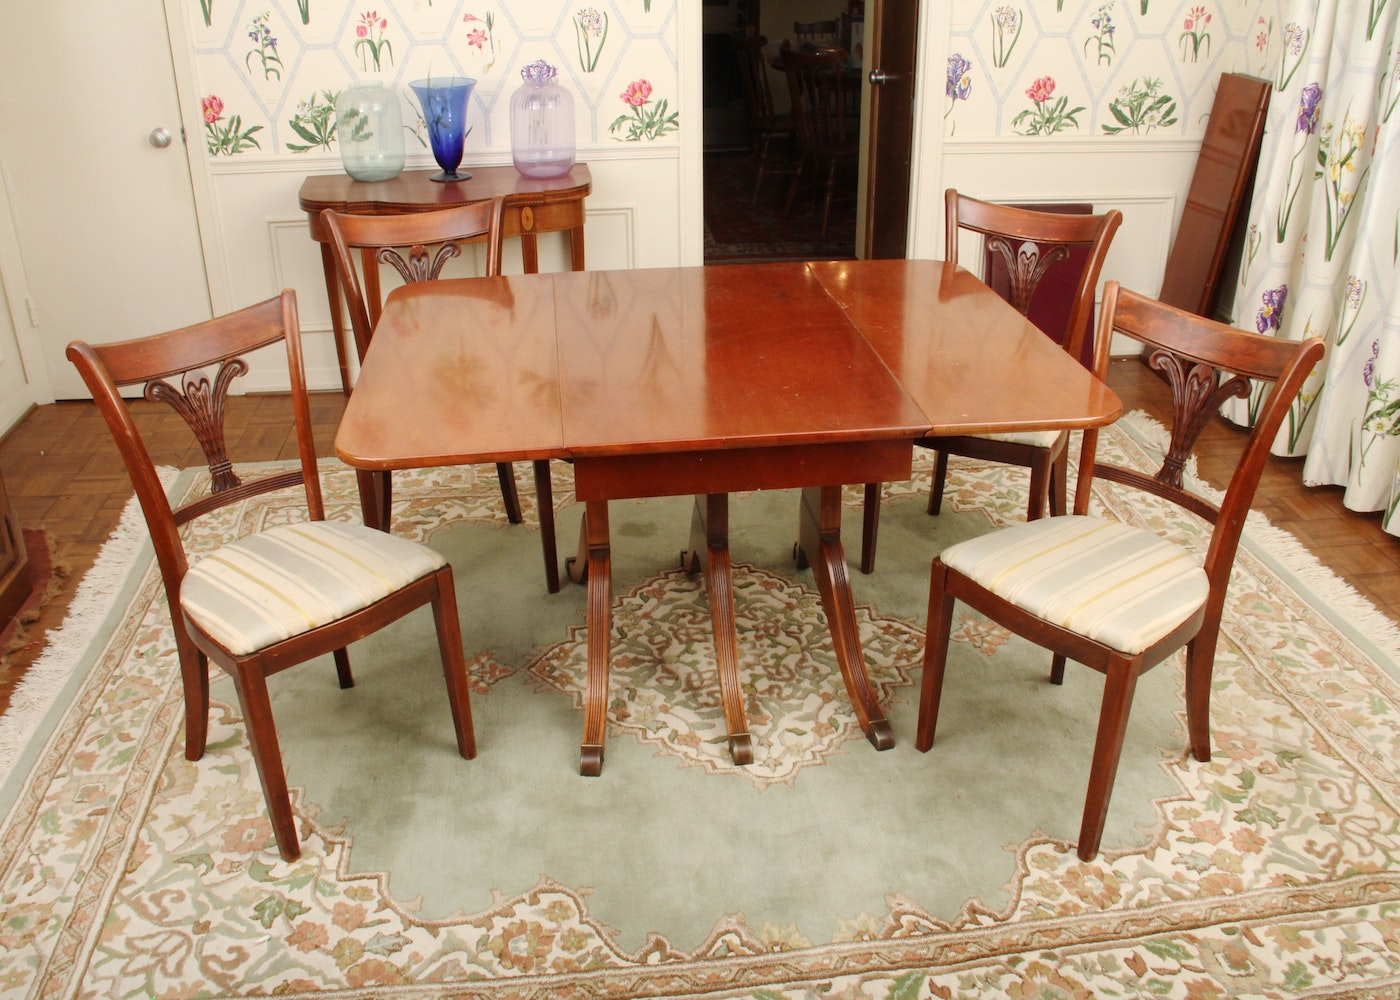 Duncan phyfe style dining room table and chairs ebth for Looking for dining room table and chairs